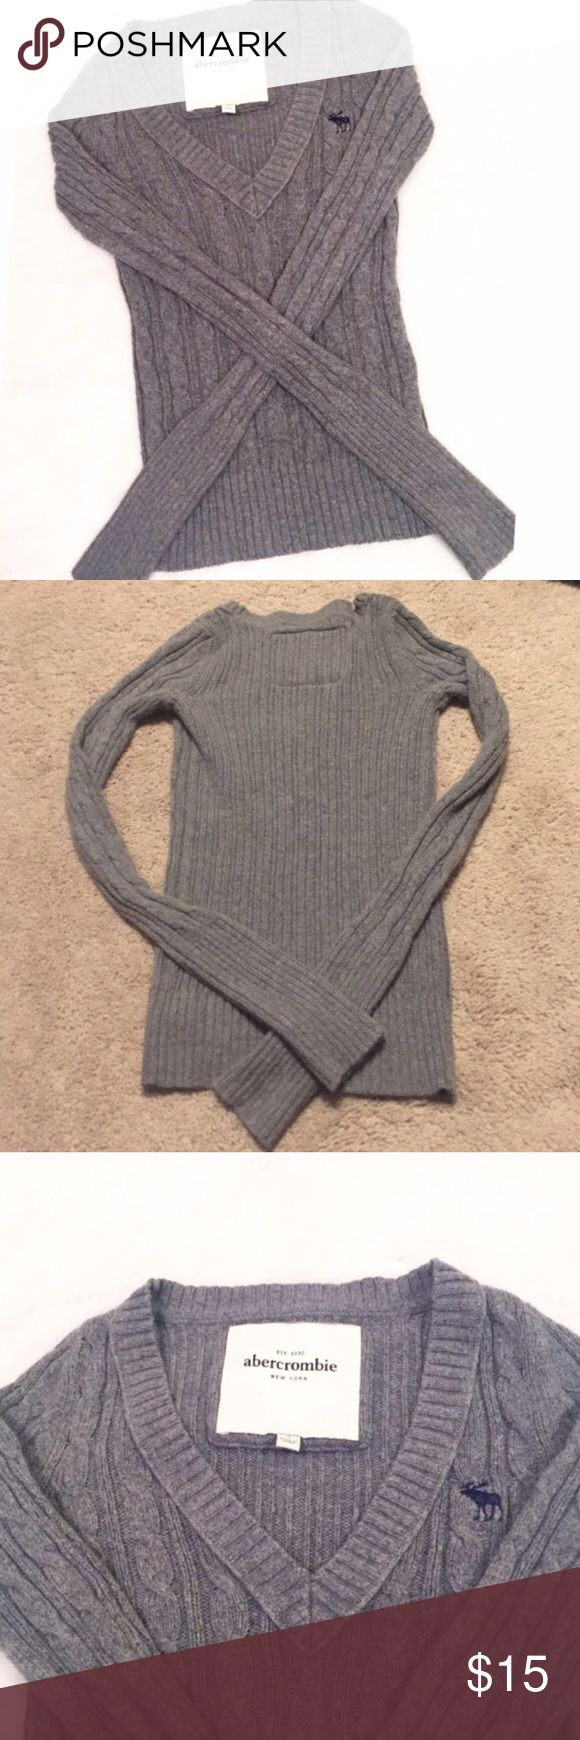 "❣BOGO 1/2 off❣🆕 Abercrombie cable knit sweater NWOT, flawless. Small. V neck. 19.5"" long, 13"" flat across chest, & 23"" sleeves. Very soft & stretchy. 55% cotton, 20% viscose, 15% acrylic, 10% rabbit hair. Hand wash cold. 🔴Bundle your likes for a private sale offer! 🔴NO TRADES, no modeling. 🔴REASONABLE offers welcome via offer button. Smoke free home. Fast shipping! abercrombie kids Shirts & Tops Sweaters"